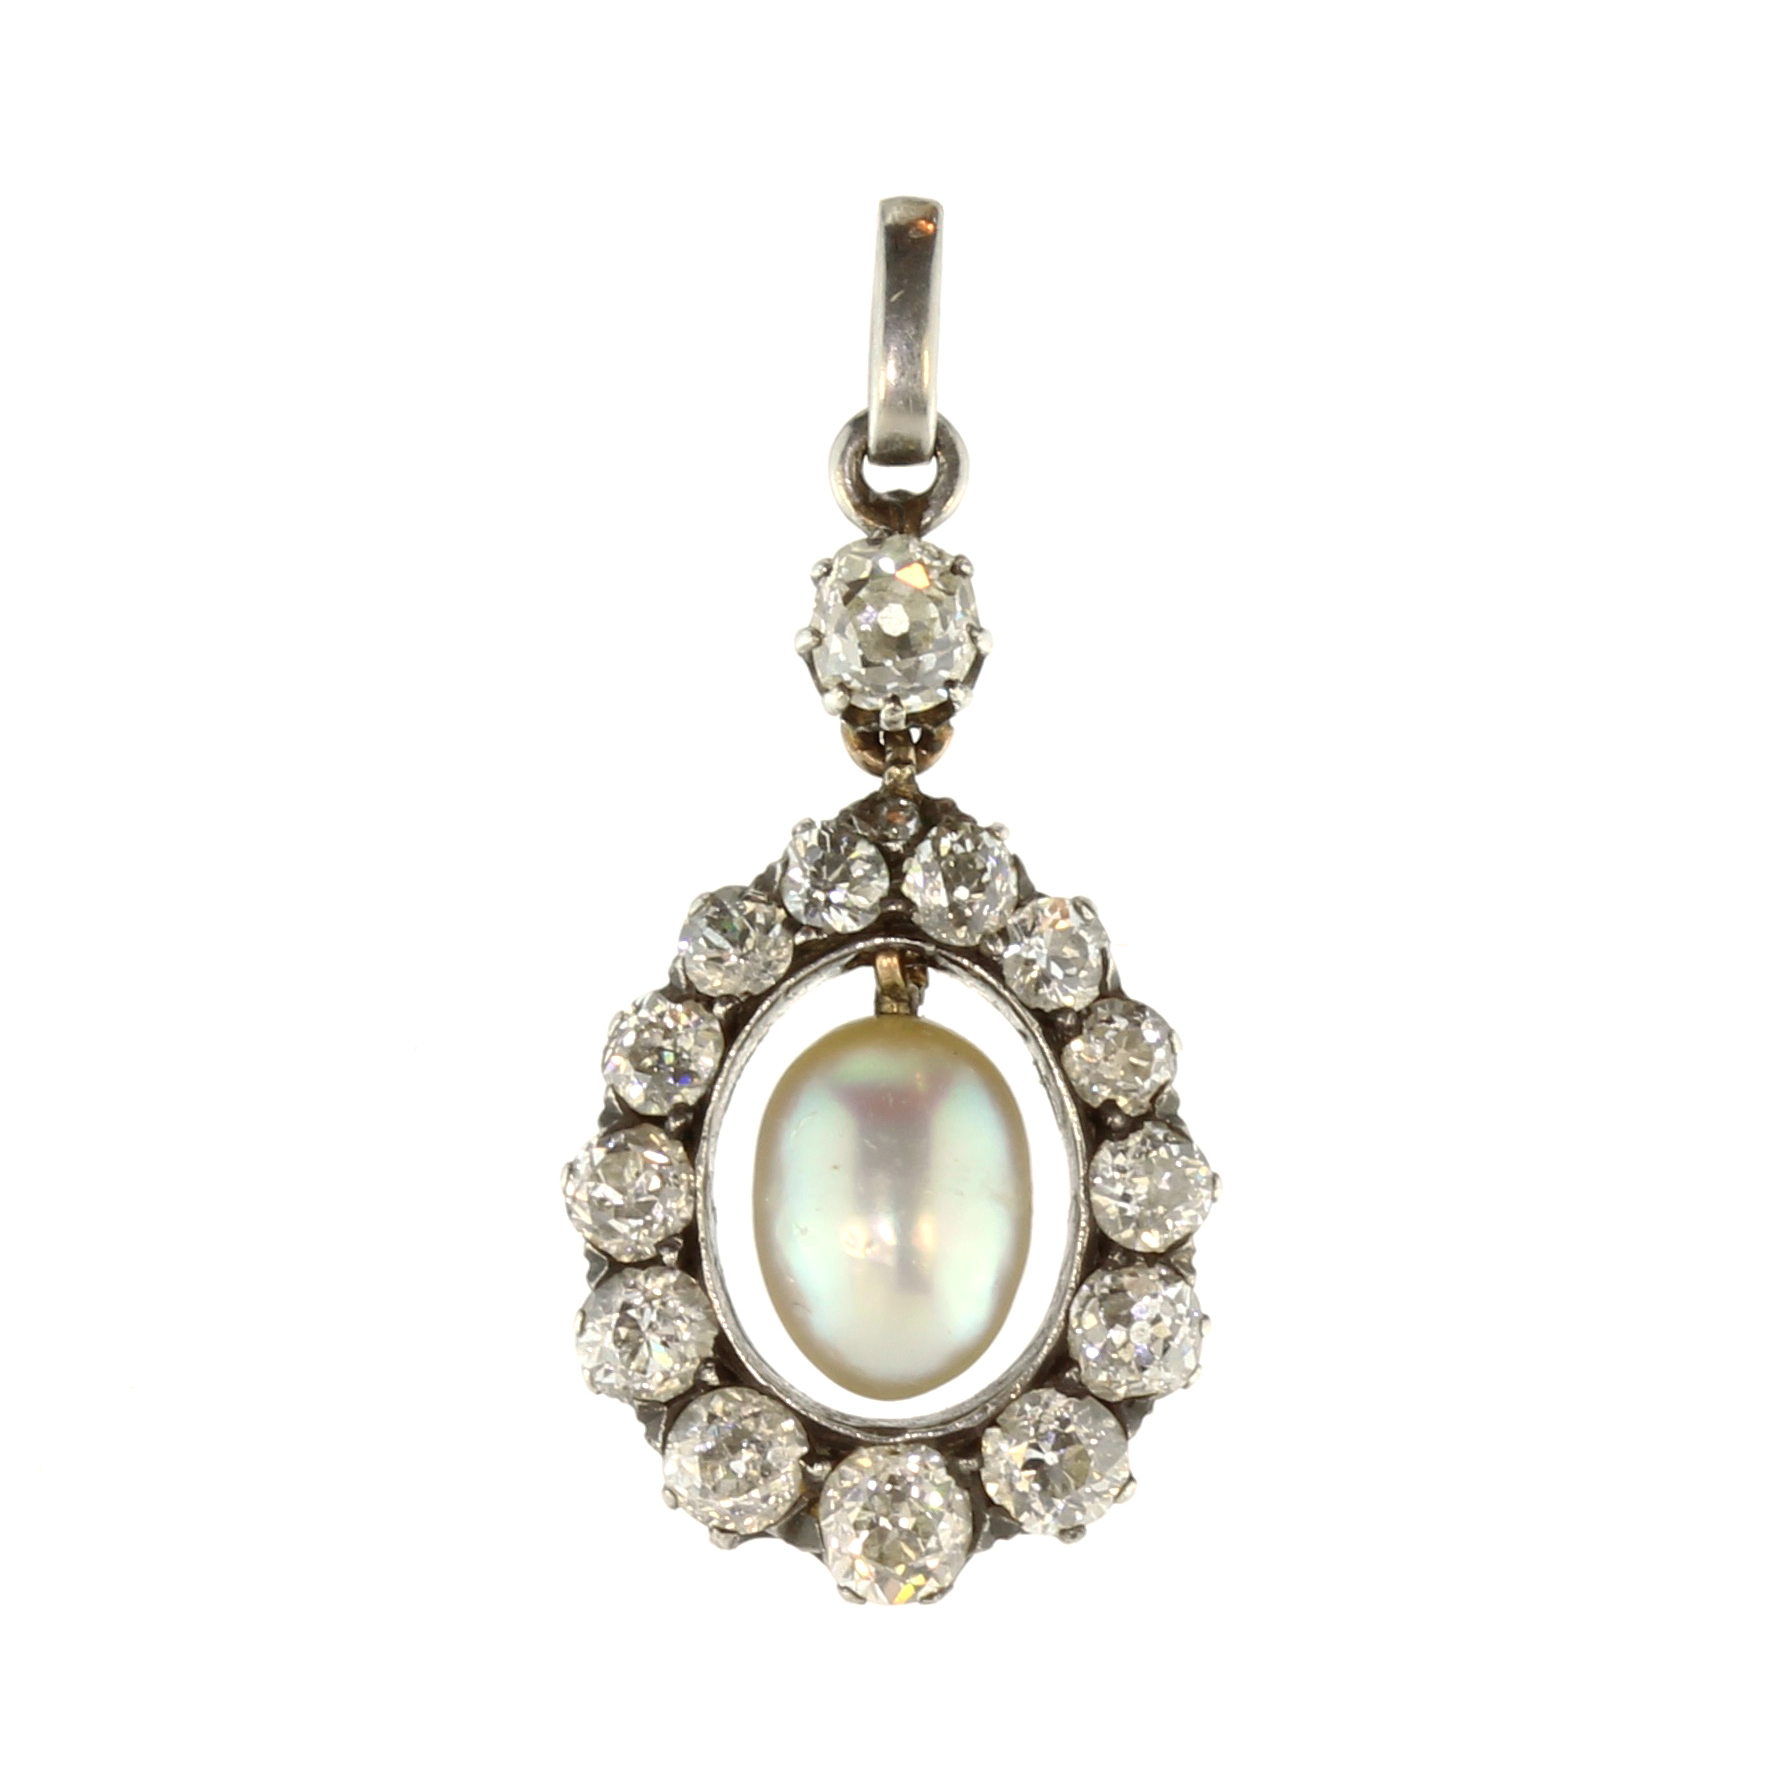 Los 35 - An antique natural saltwater pearl and diamond pendant in gold and silver, set with a central